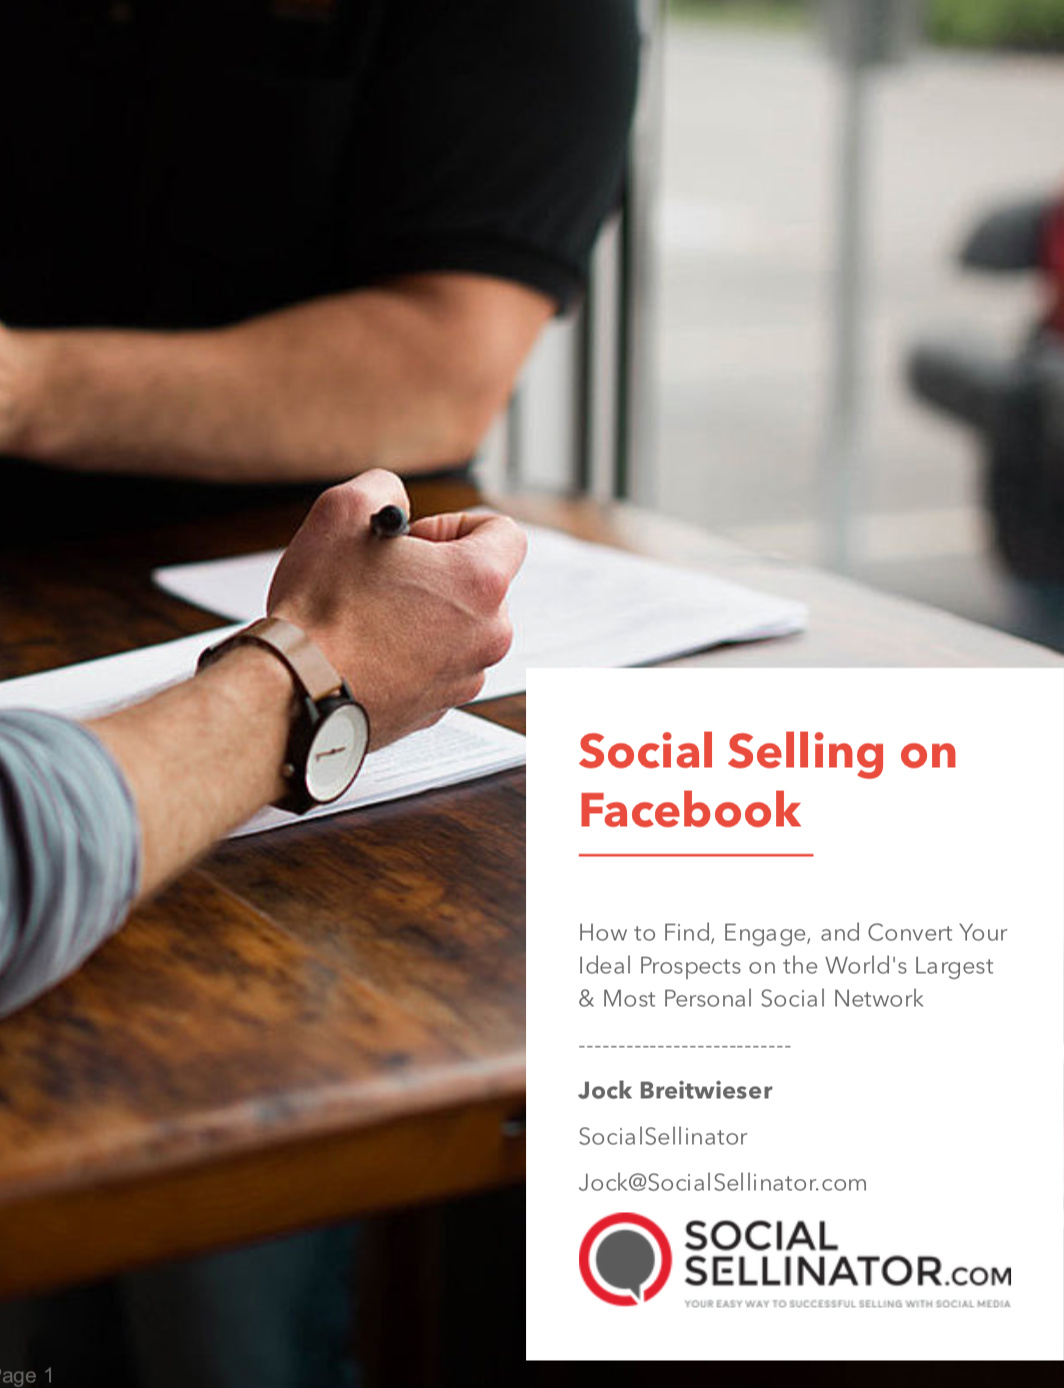 Social Selling on Facebook